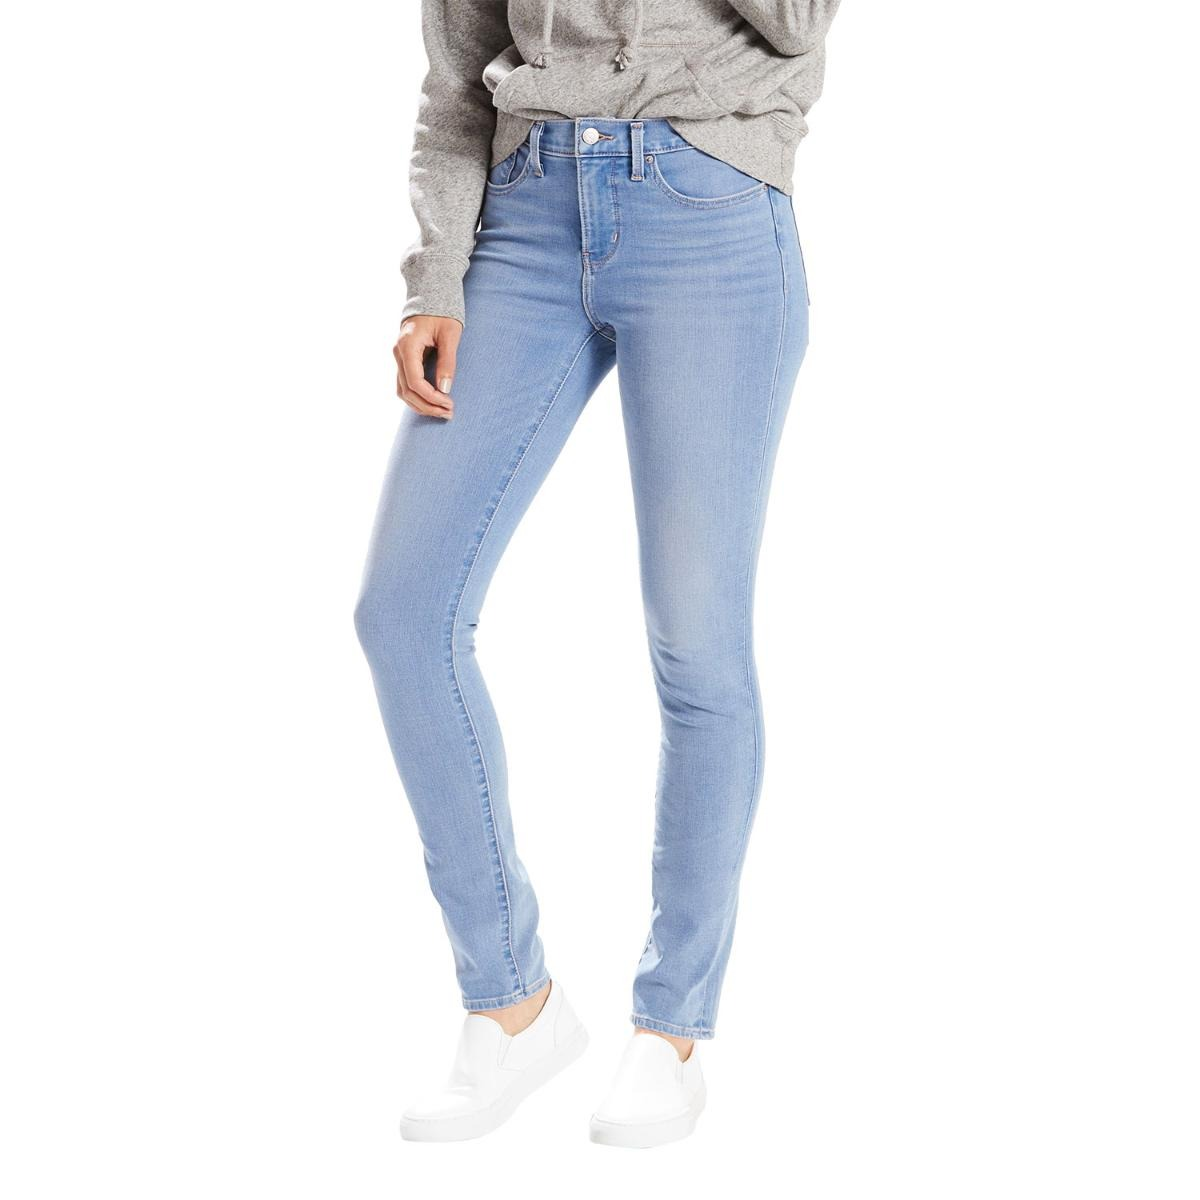 0f2c1a9279029 calça jeans levis fem 311 shaping skinny 4 way stretch clara. Carregando  zoom.